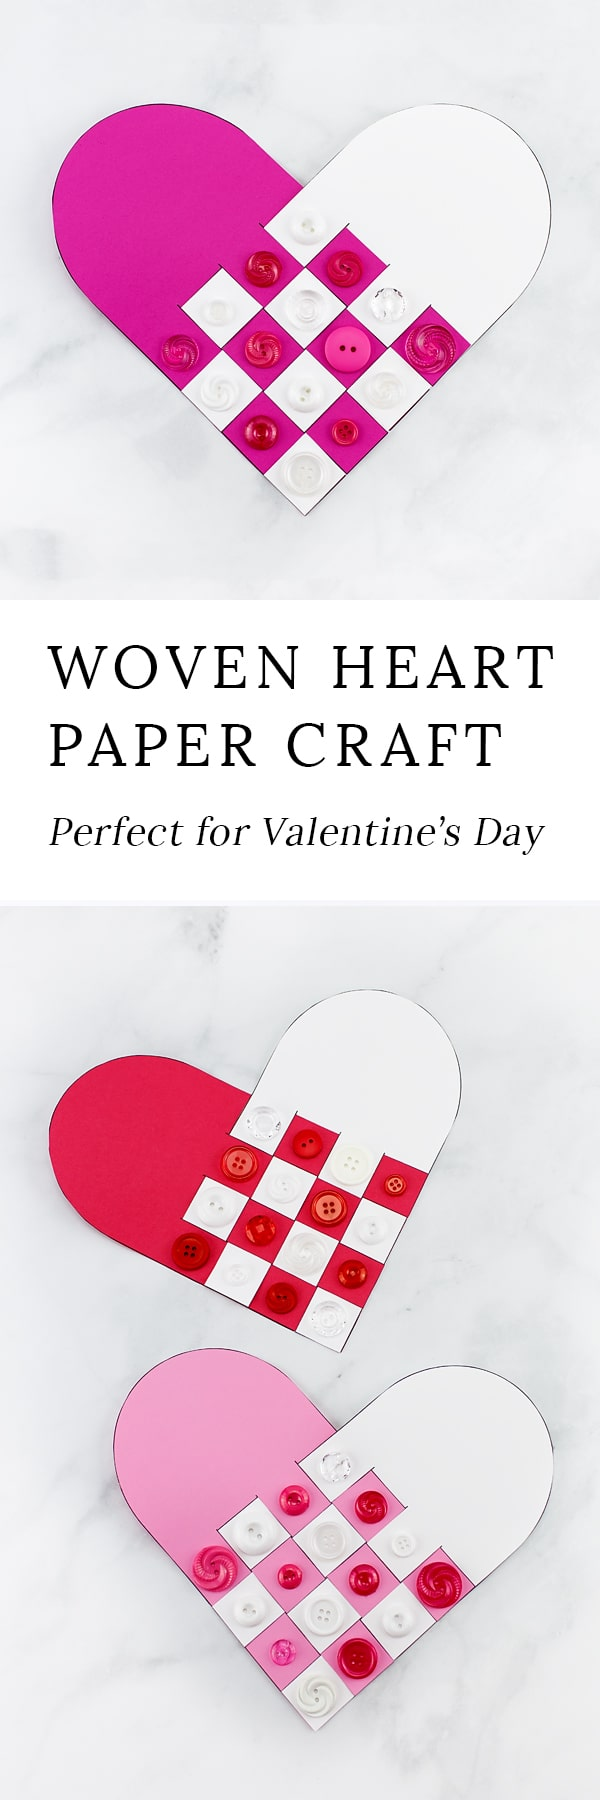 Reminiscent of Scandinavian Woven Hearts, this Woven Heart Craft is an easy and fun Valentine's Day craft for kids of all ages to make at school or home.